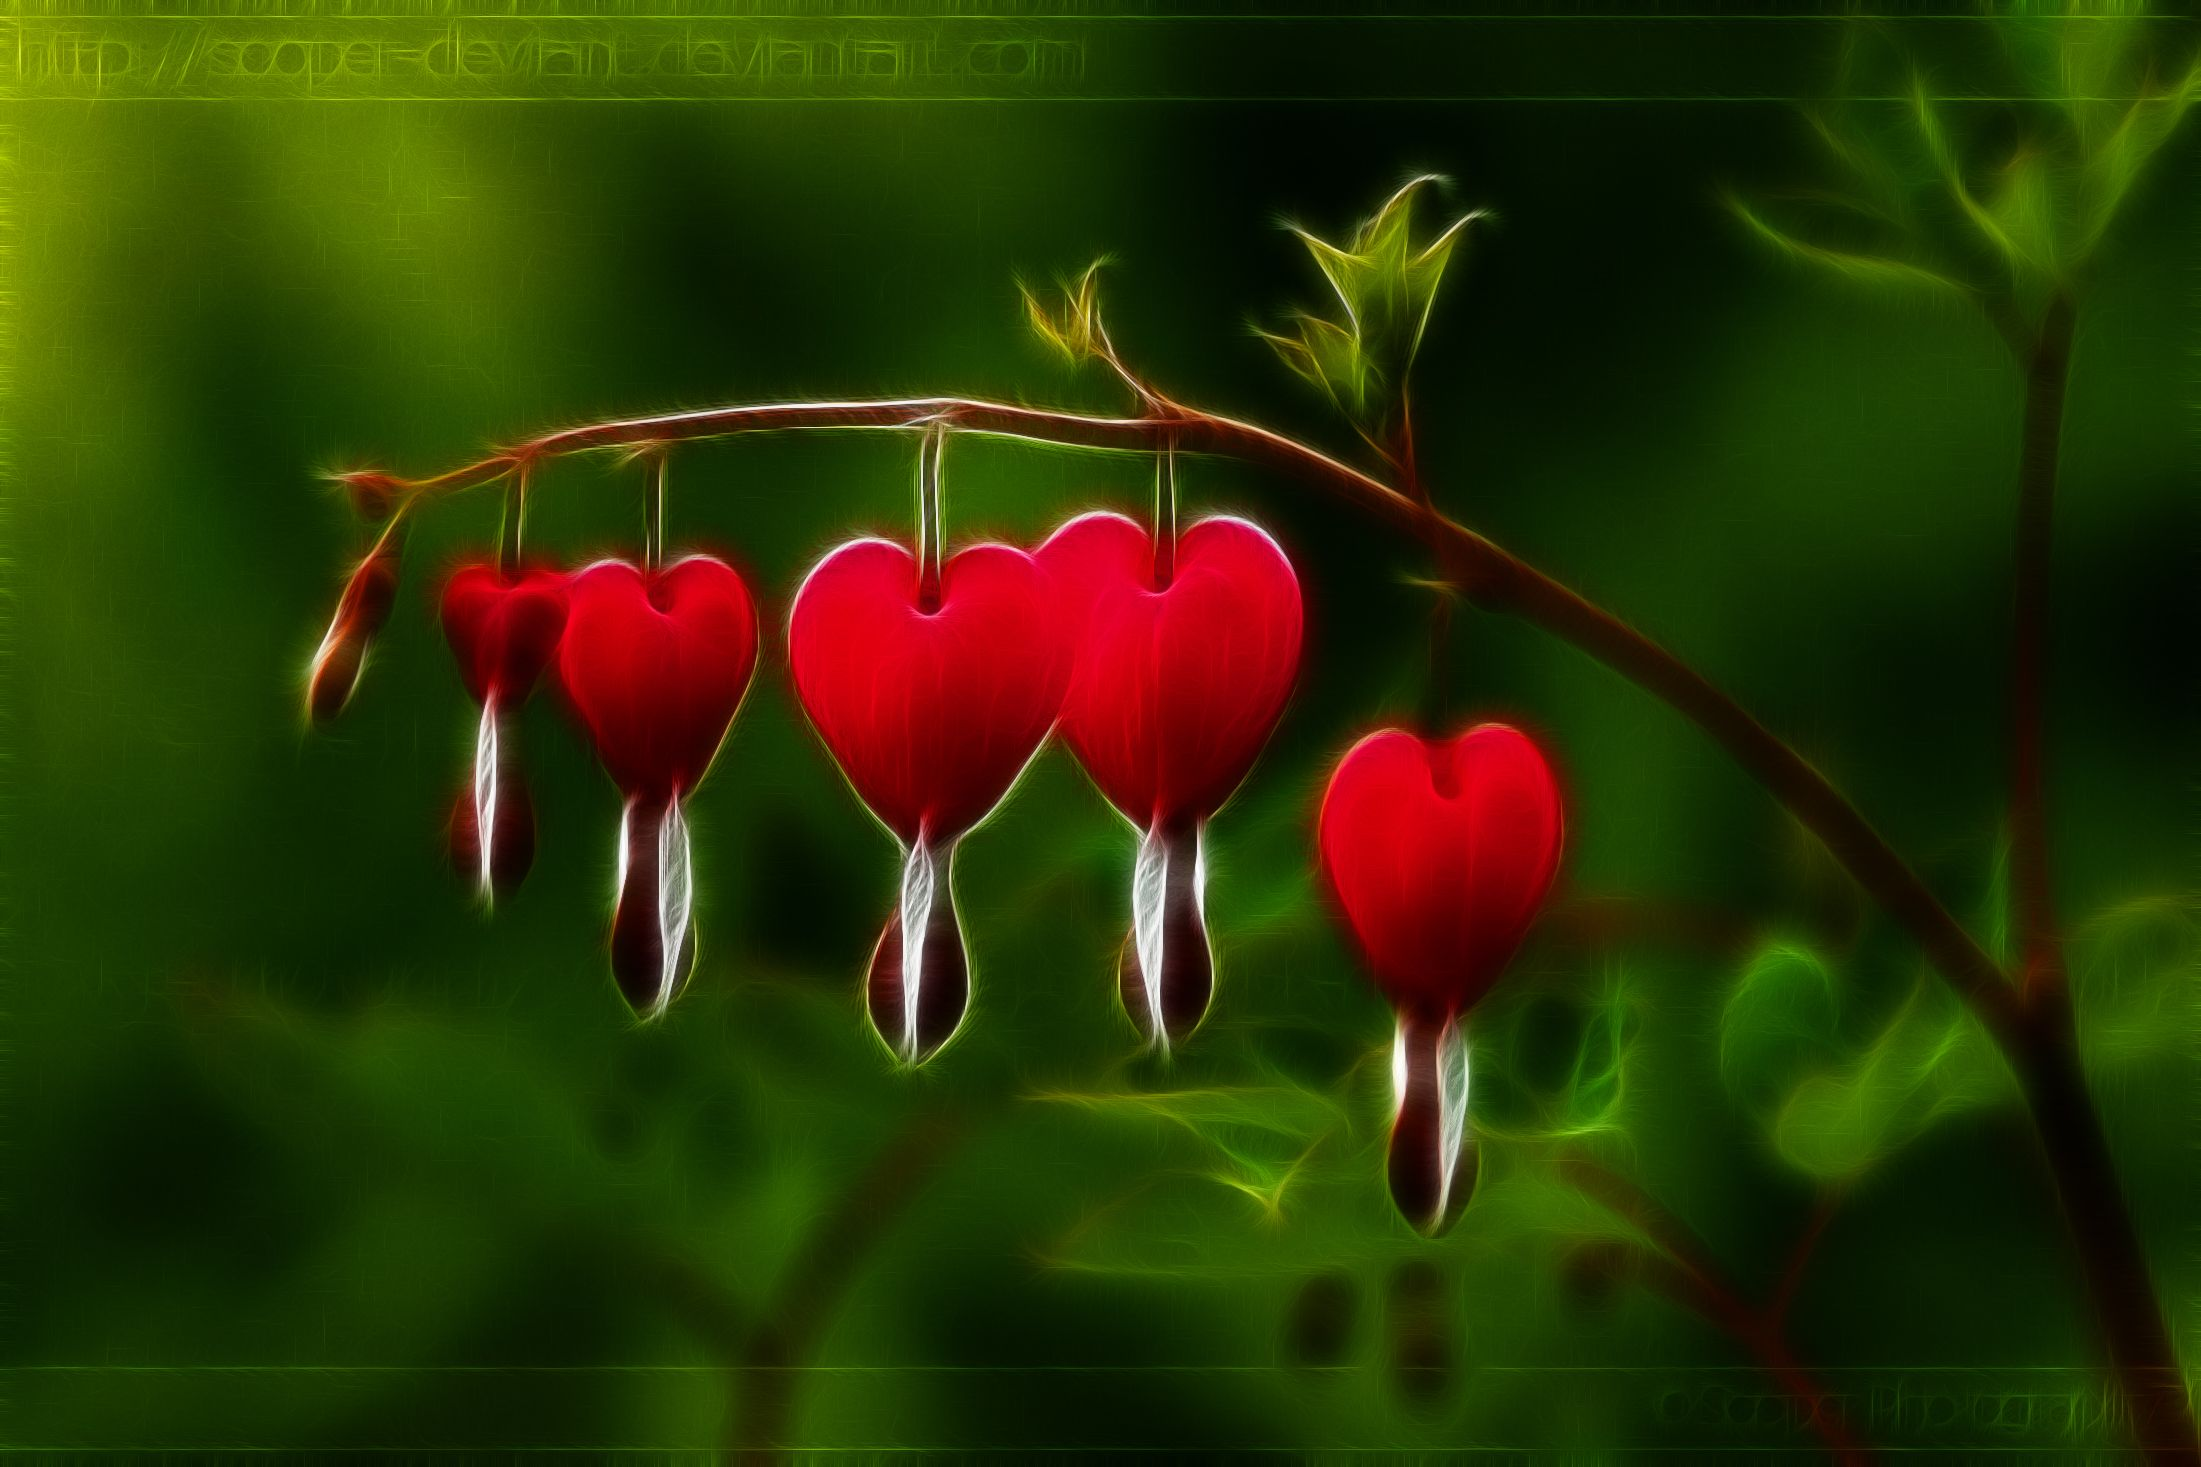 Bleeding Hearts Flower Pic Google Search Bleeding Heart Flower Bleeding Heart Flower Heart